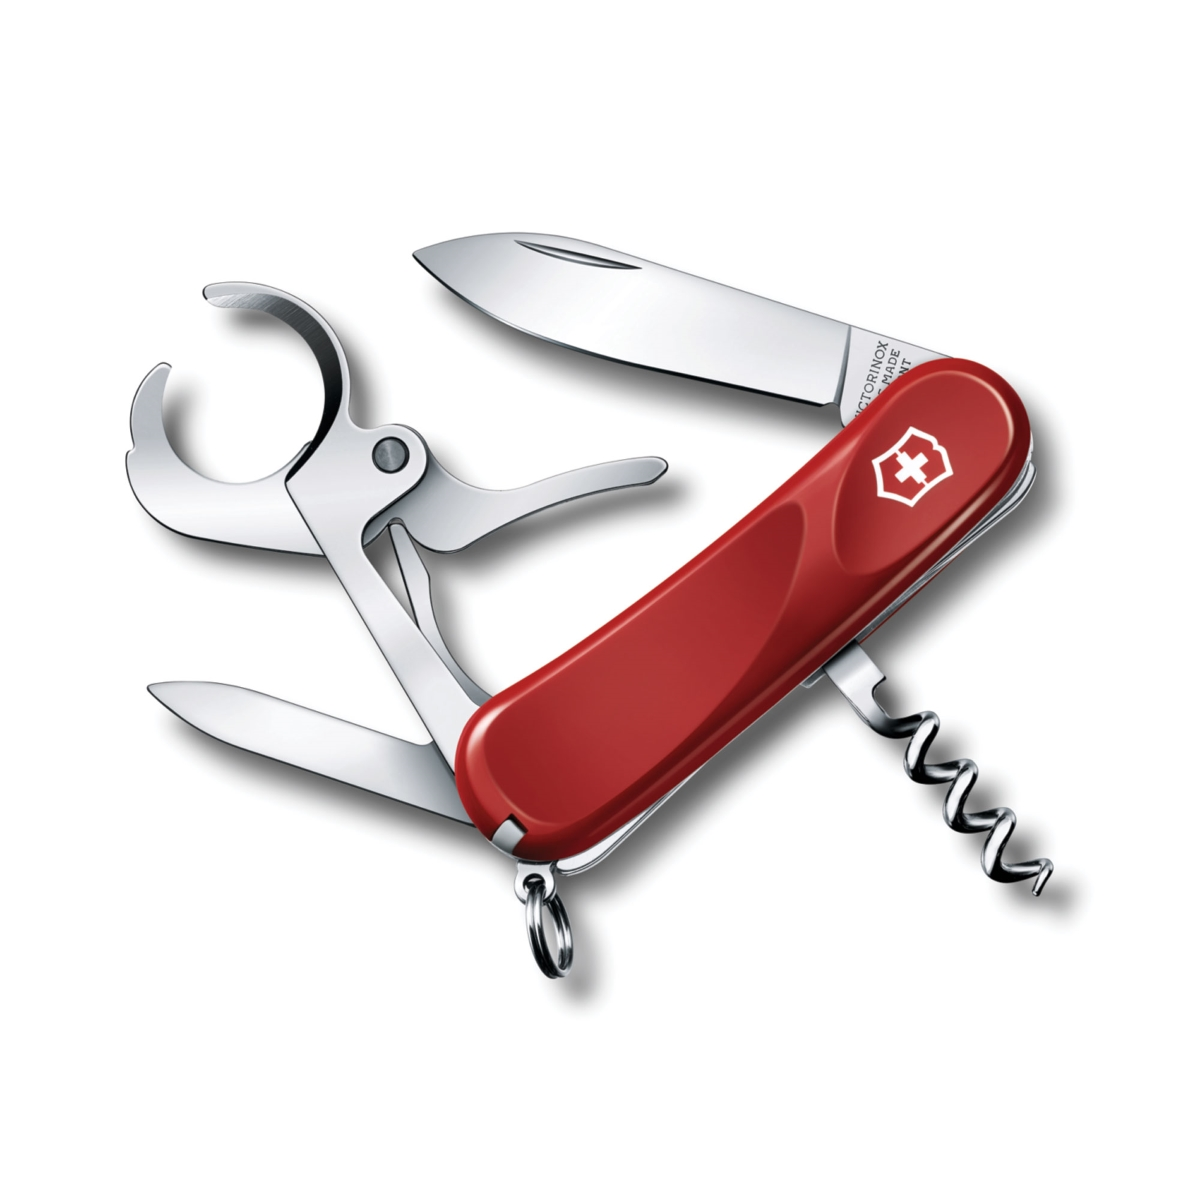 Victorinox Swiss Army Red Cigar 36 Pocket Knife with Cigar Cutter